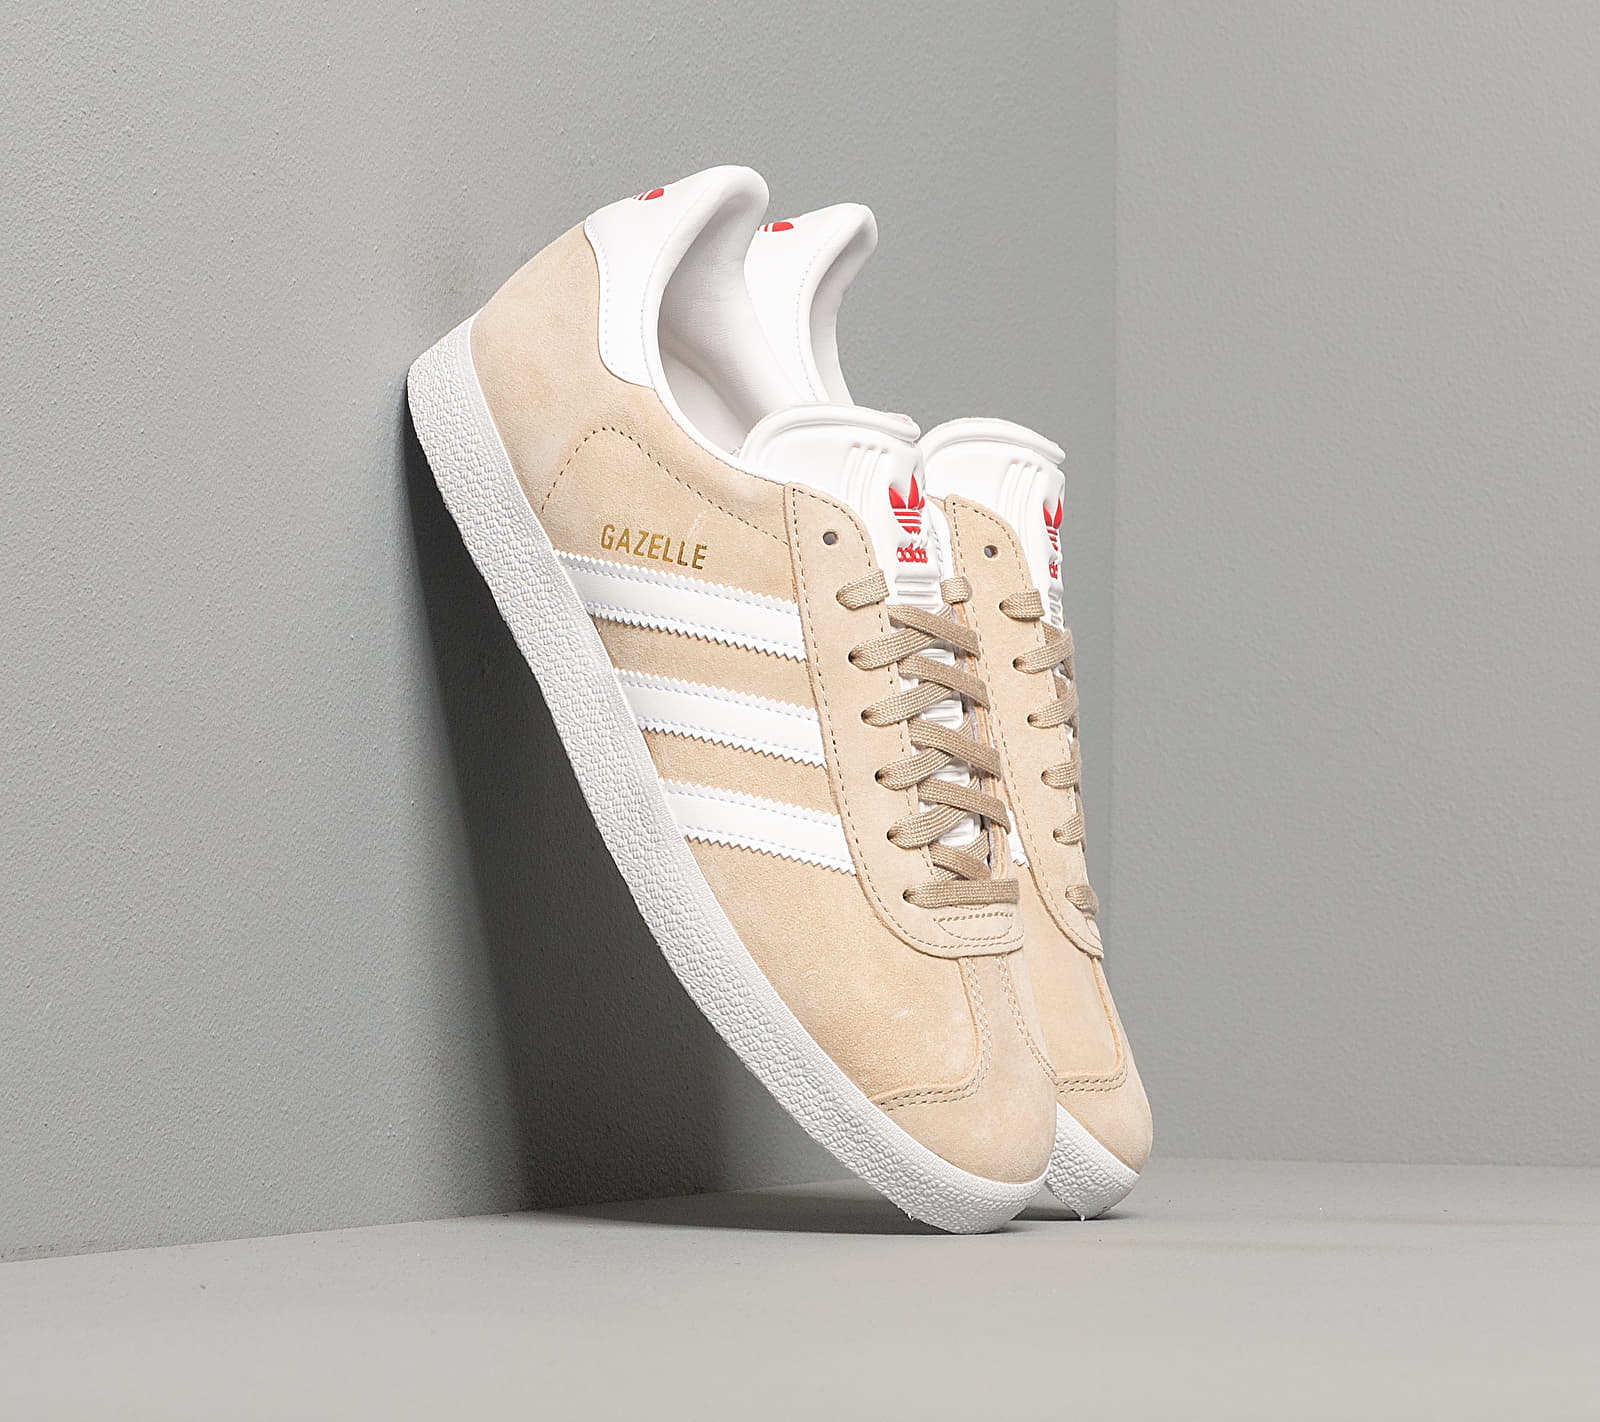 adidas Gazelle W Savanna/ Ftw White/ Glow Red EUR 38 2/3